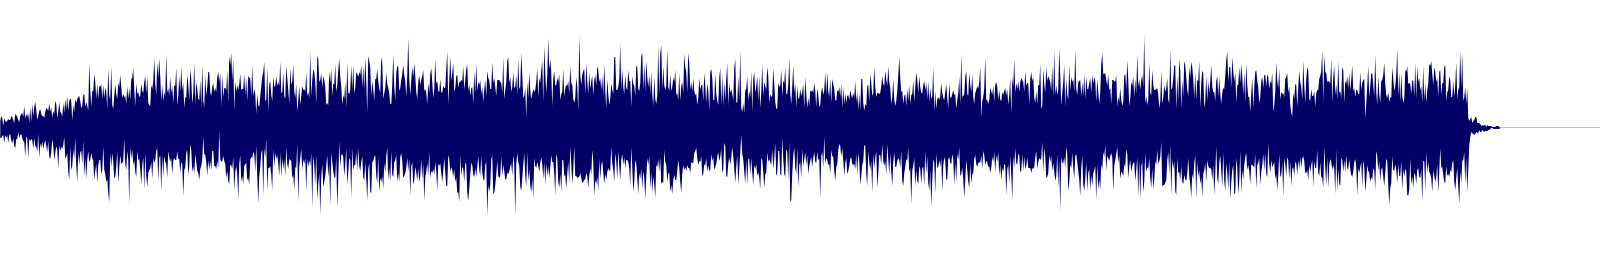 waveform of track #154617